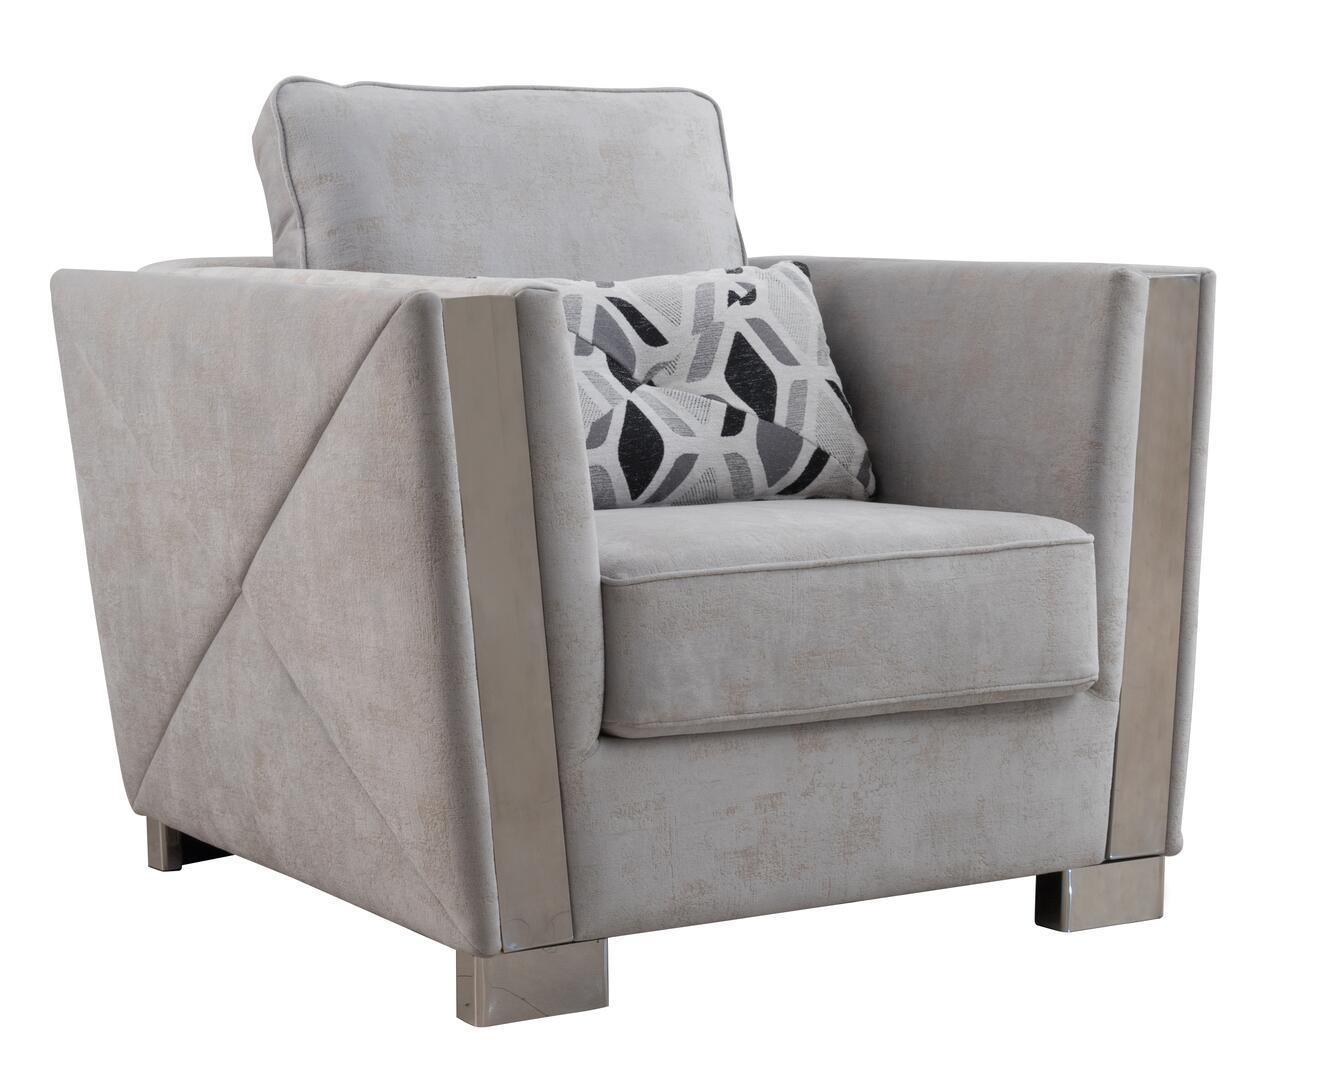 Modern Gray Fabric Arm Chairs 1 pcs Cosmos Furniture 3037GYKIN